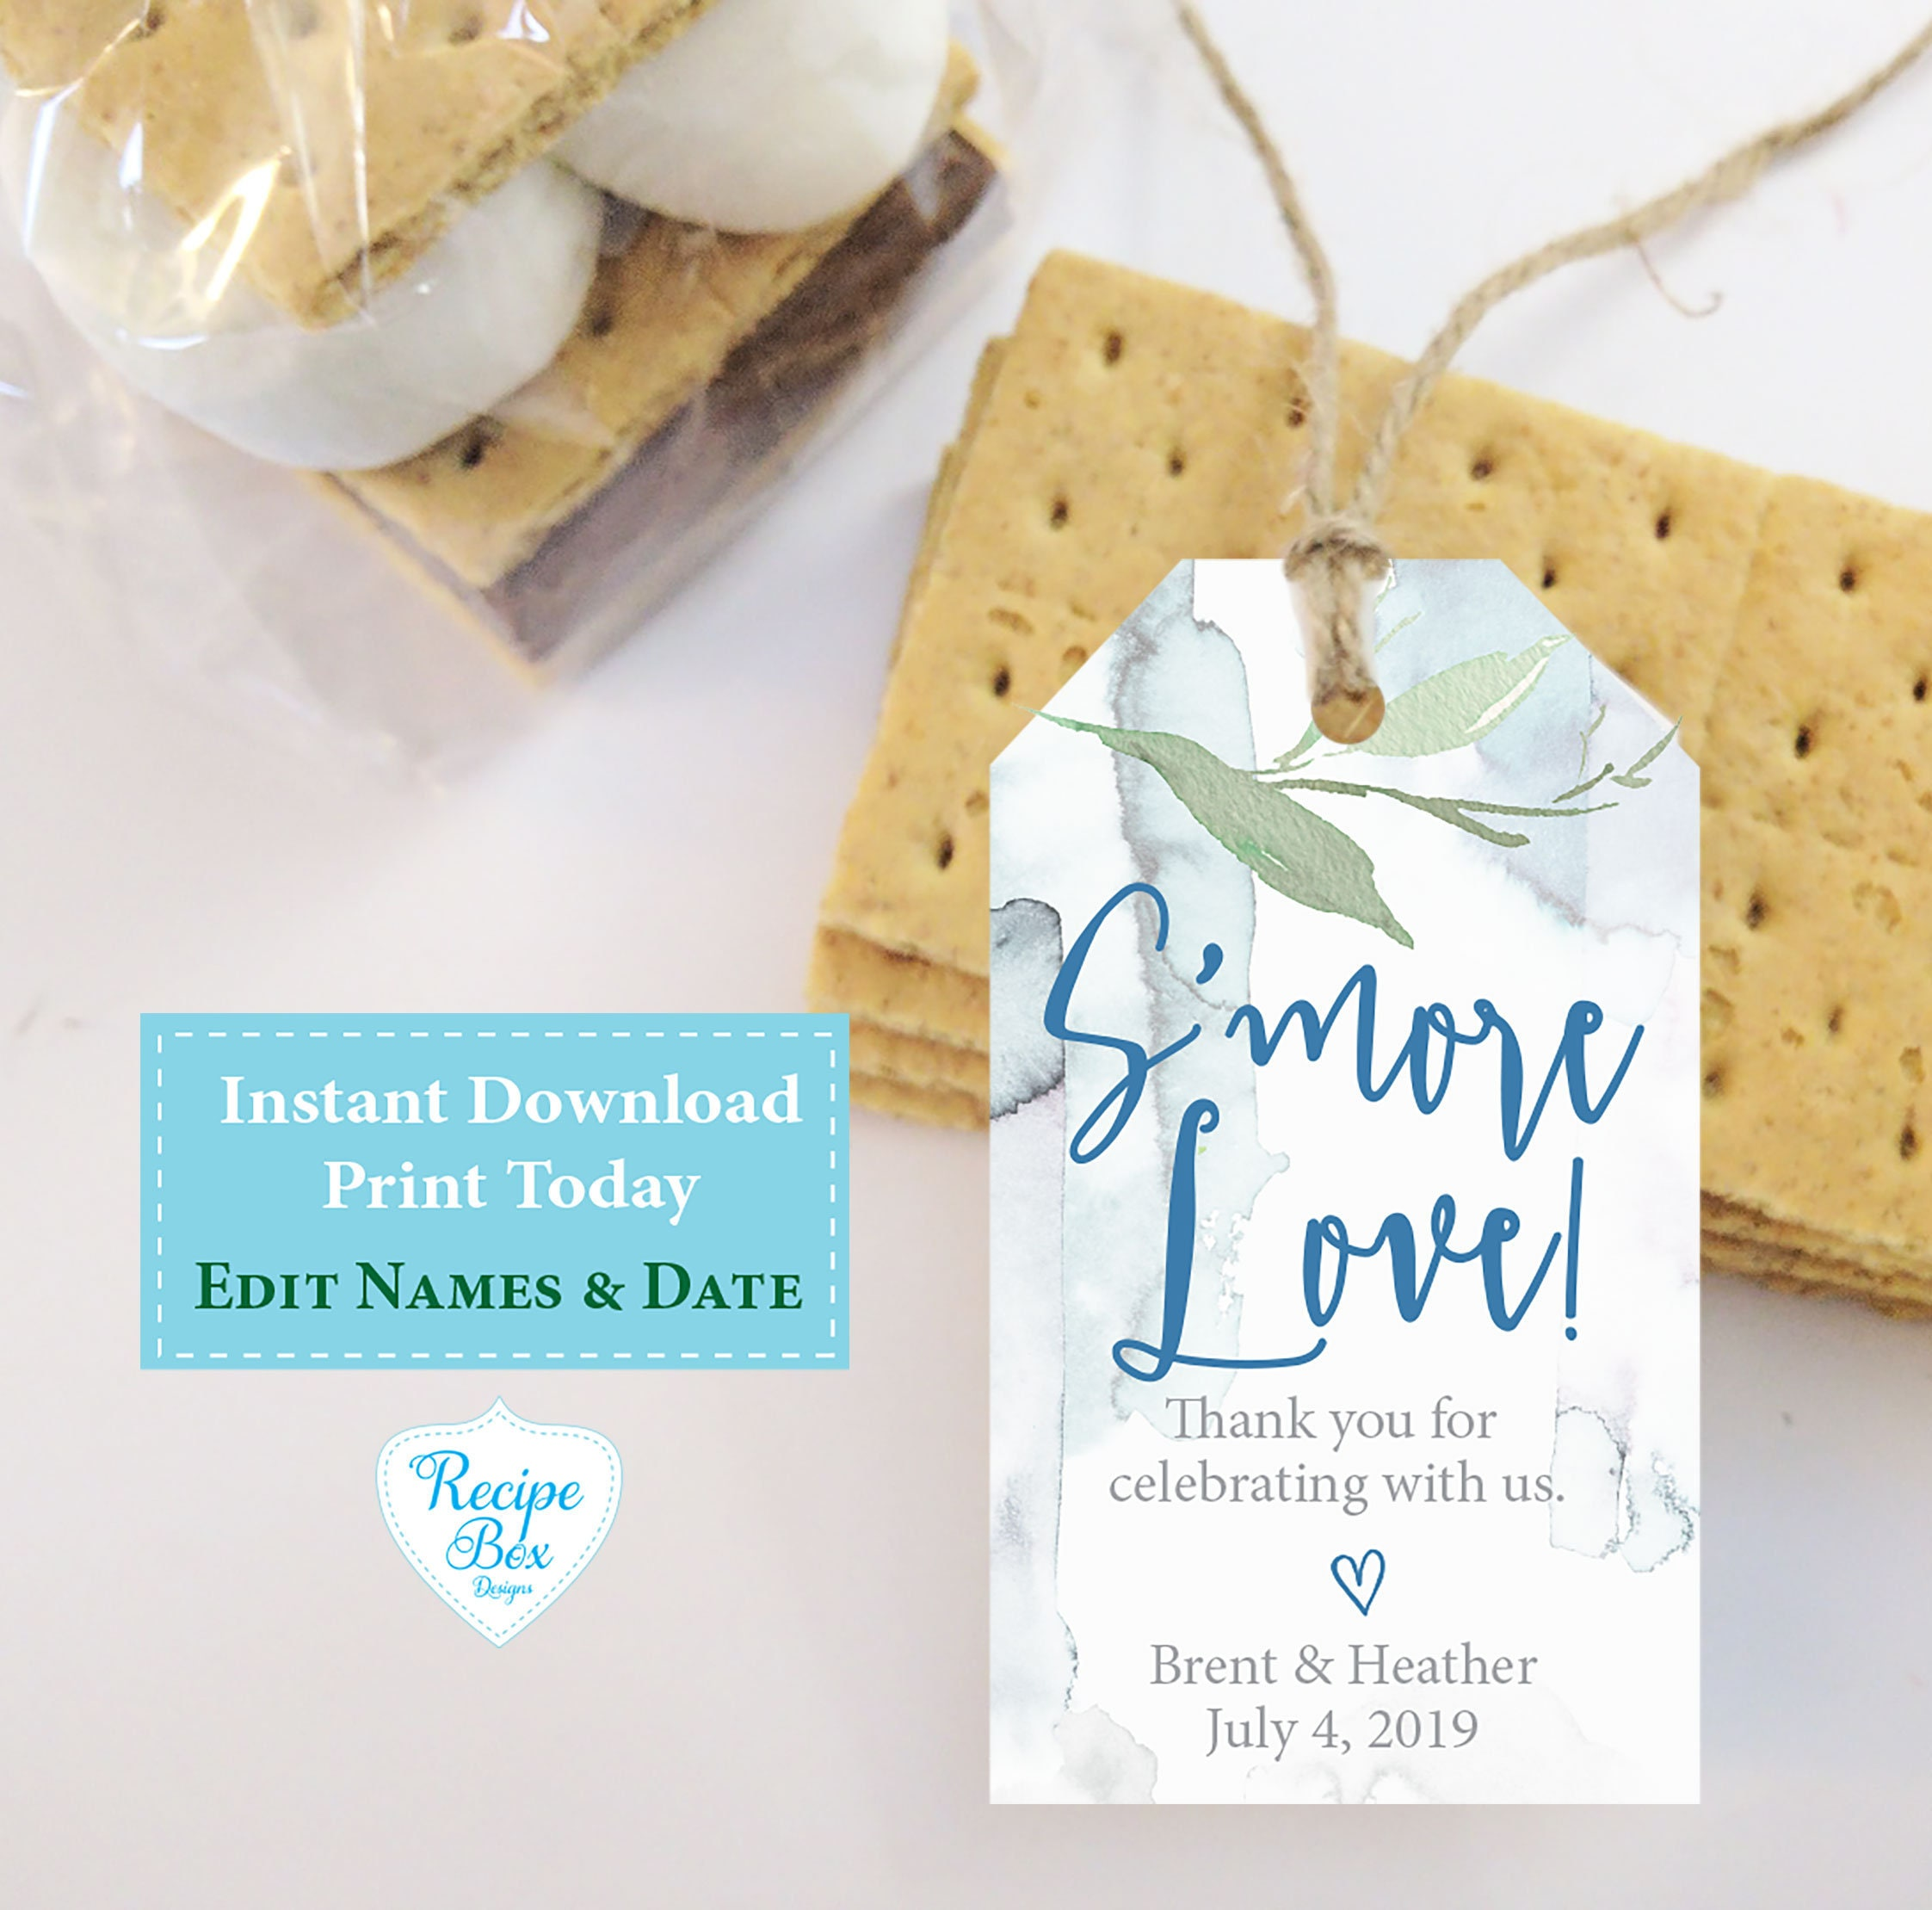 Smore Love Wedding Favor Template Printable, Instant Download Tags ...